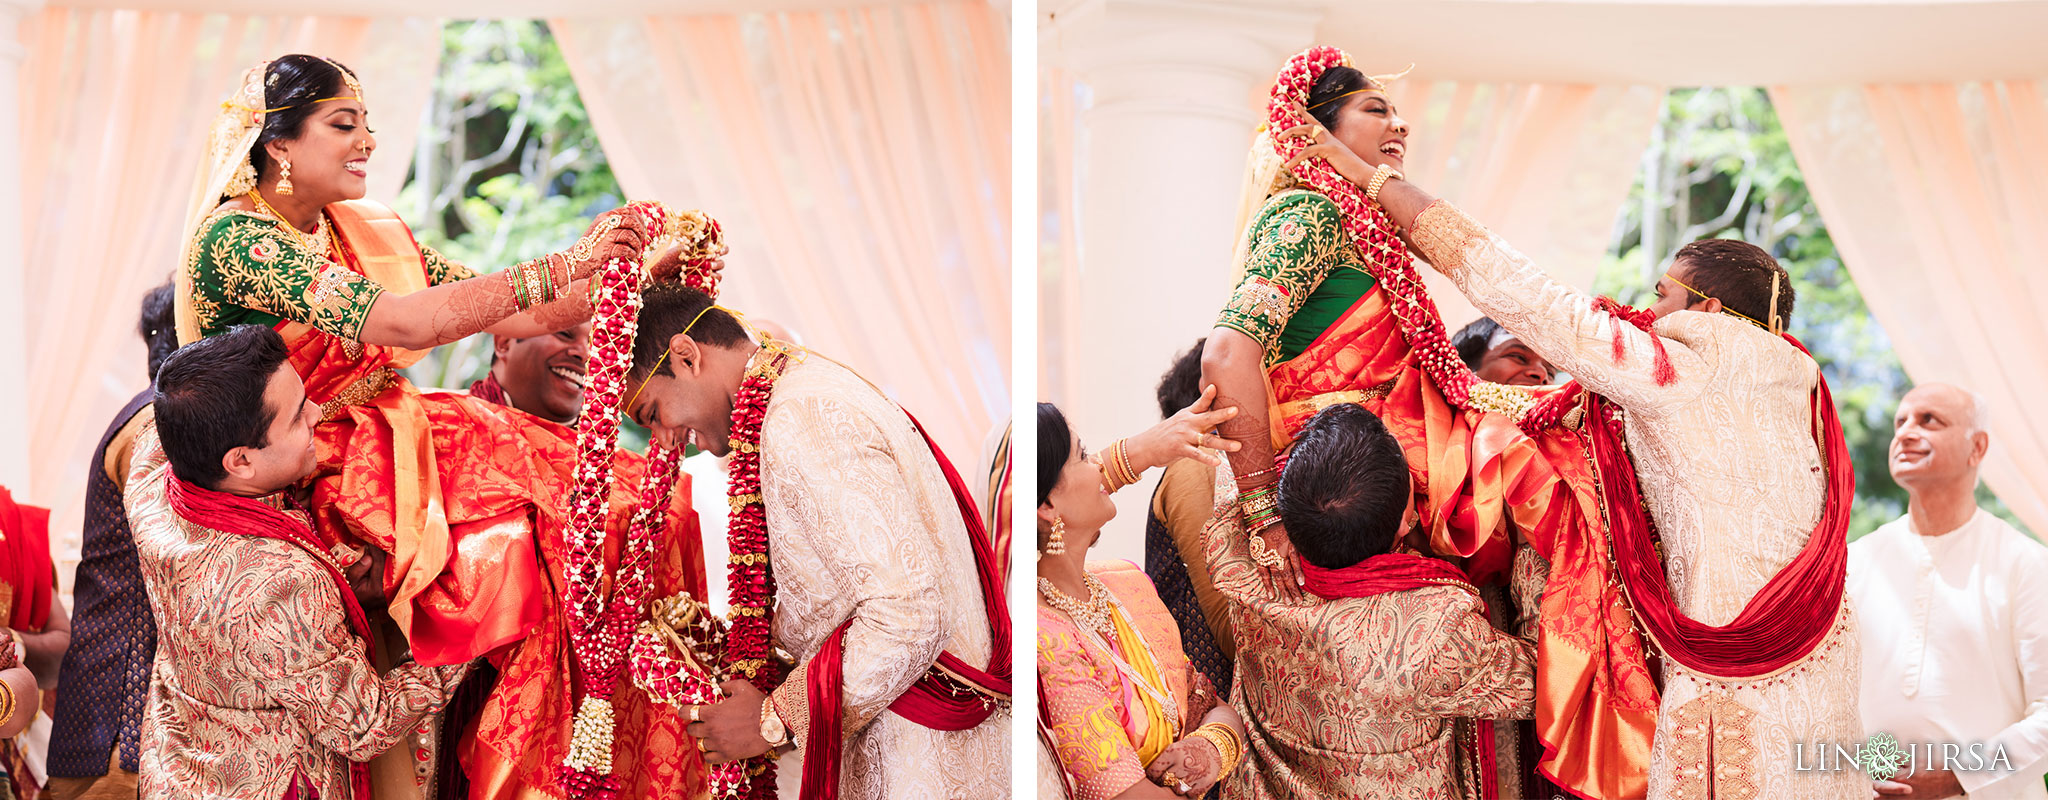 17 monarch beach resort orange county indian wedding photography